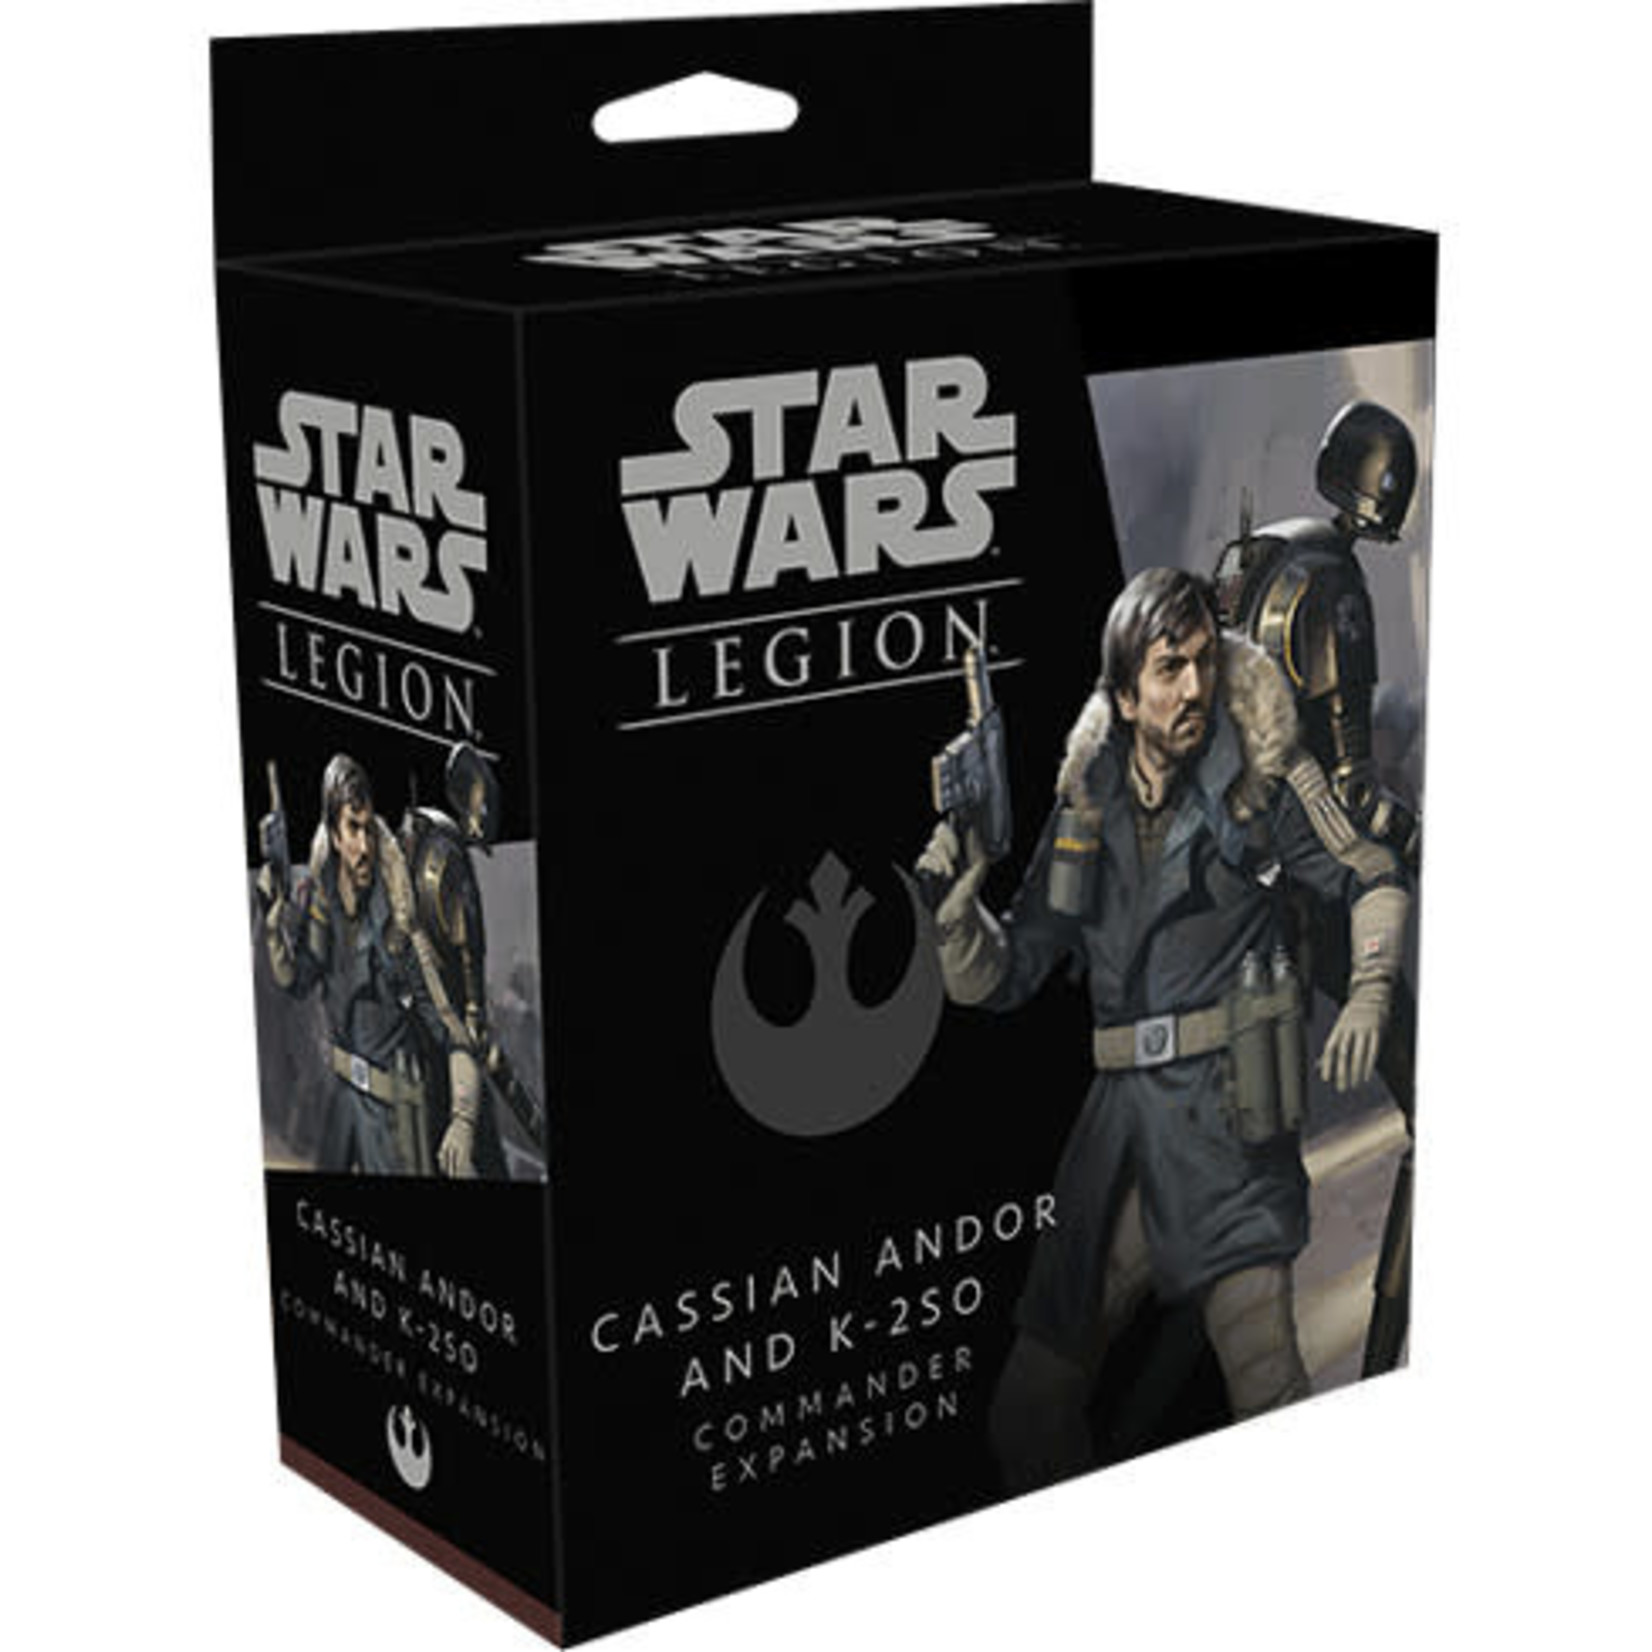 Asmodee Star Wars Legion: Cassian Andor and K-2SO Commander Expansion